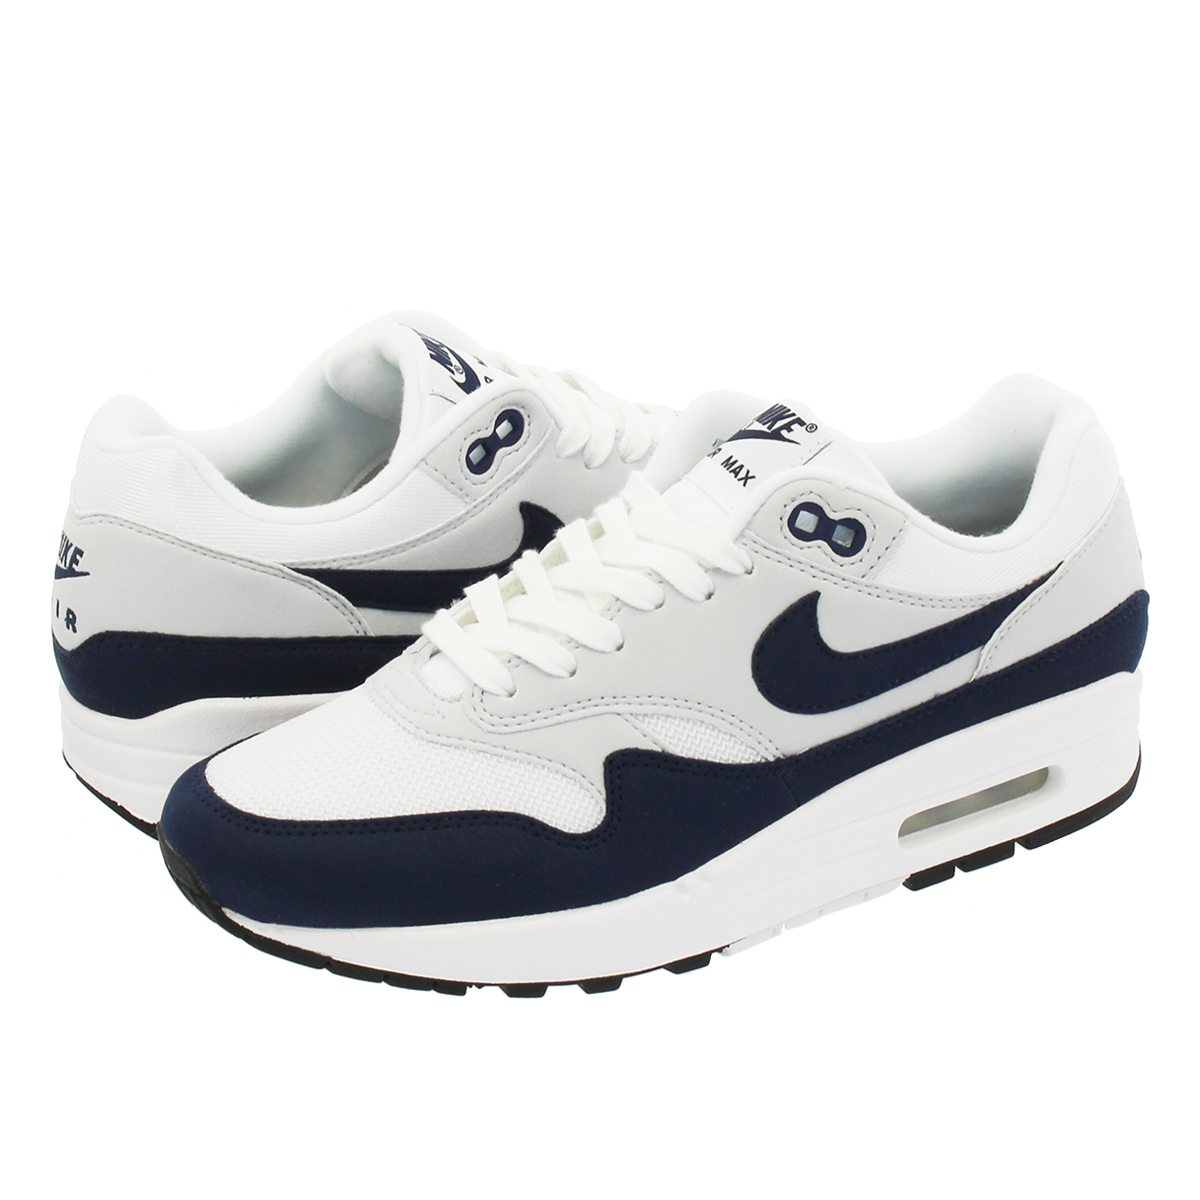 NIKE WMNS AIR MAX 1 Nike women Air Max 1 WHITE OBSIDIAN PURE PLATINUM BLACK  319 fa5b8add1